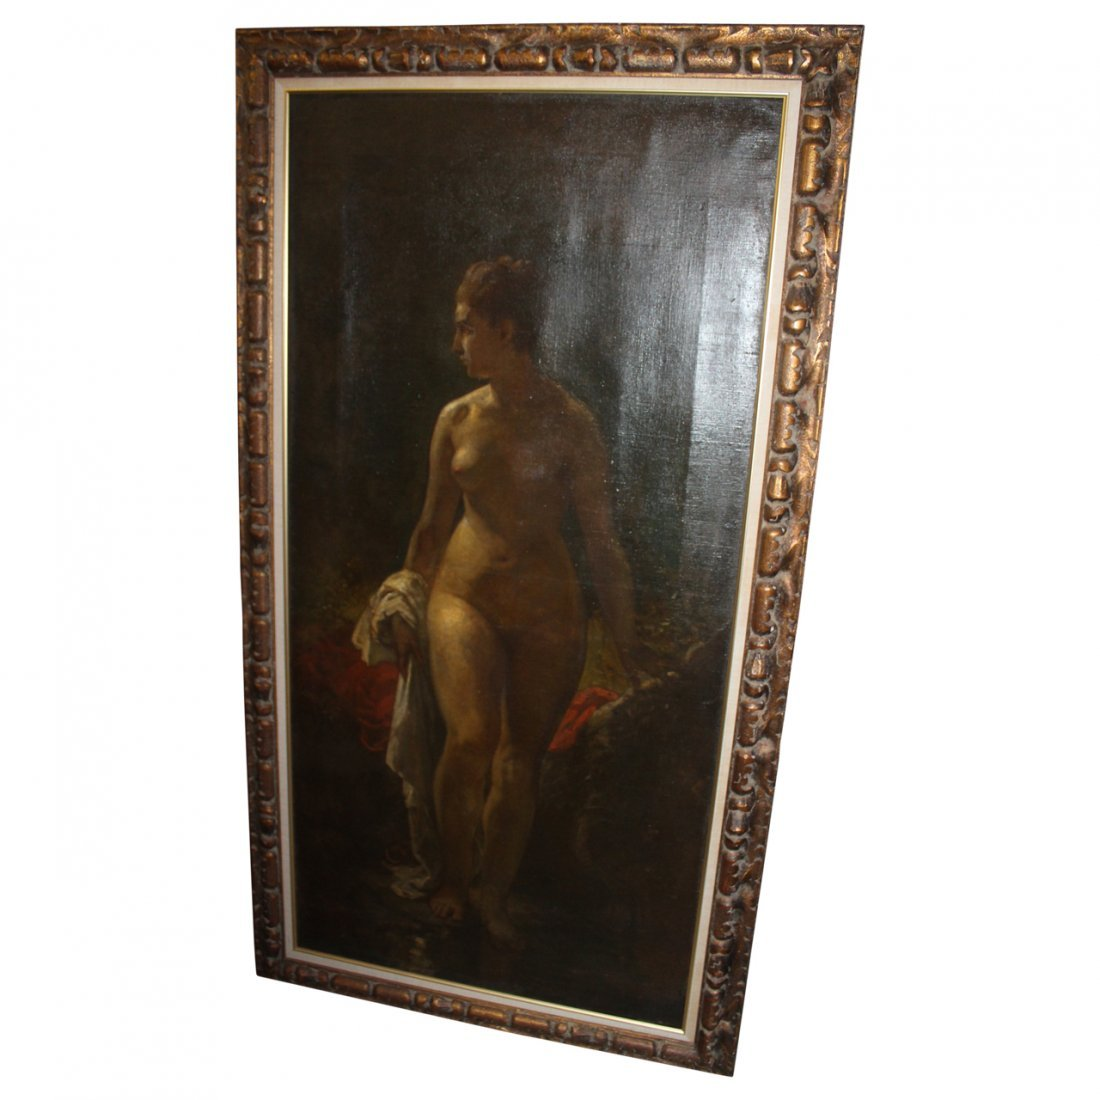 Large Antique Oil Painting of a Nude